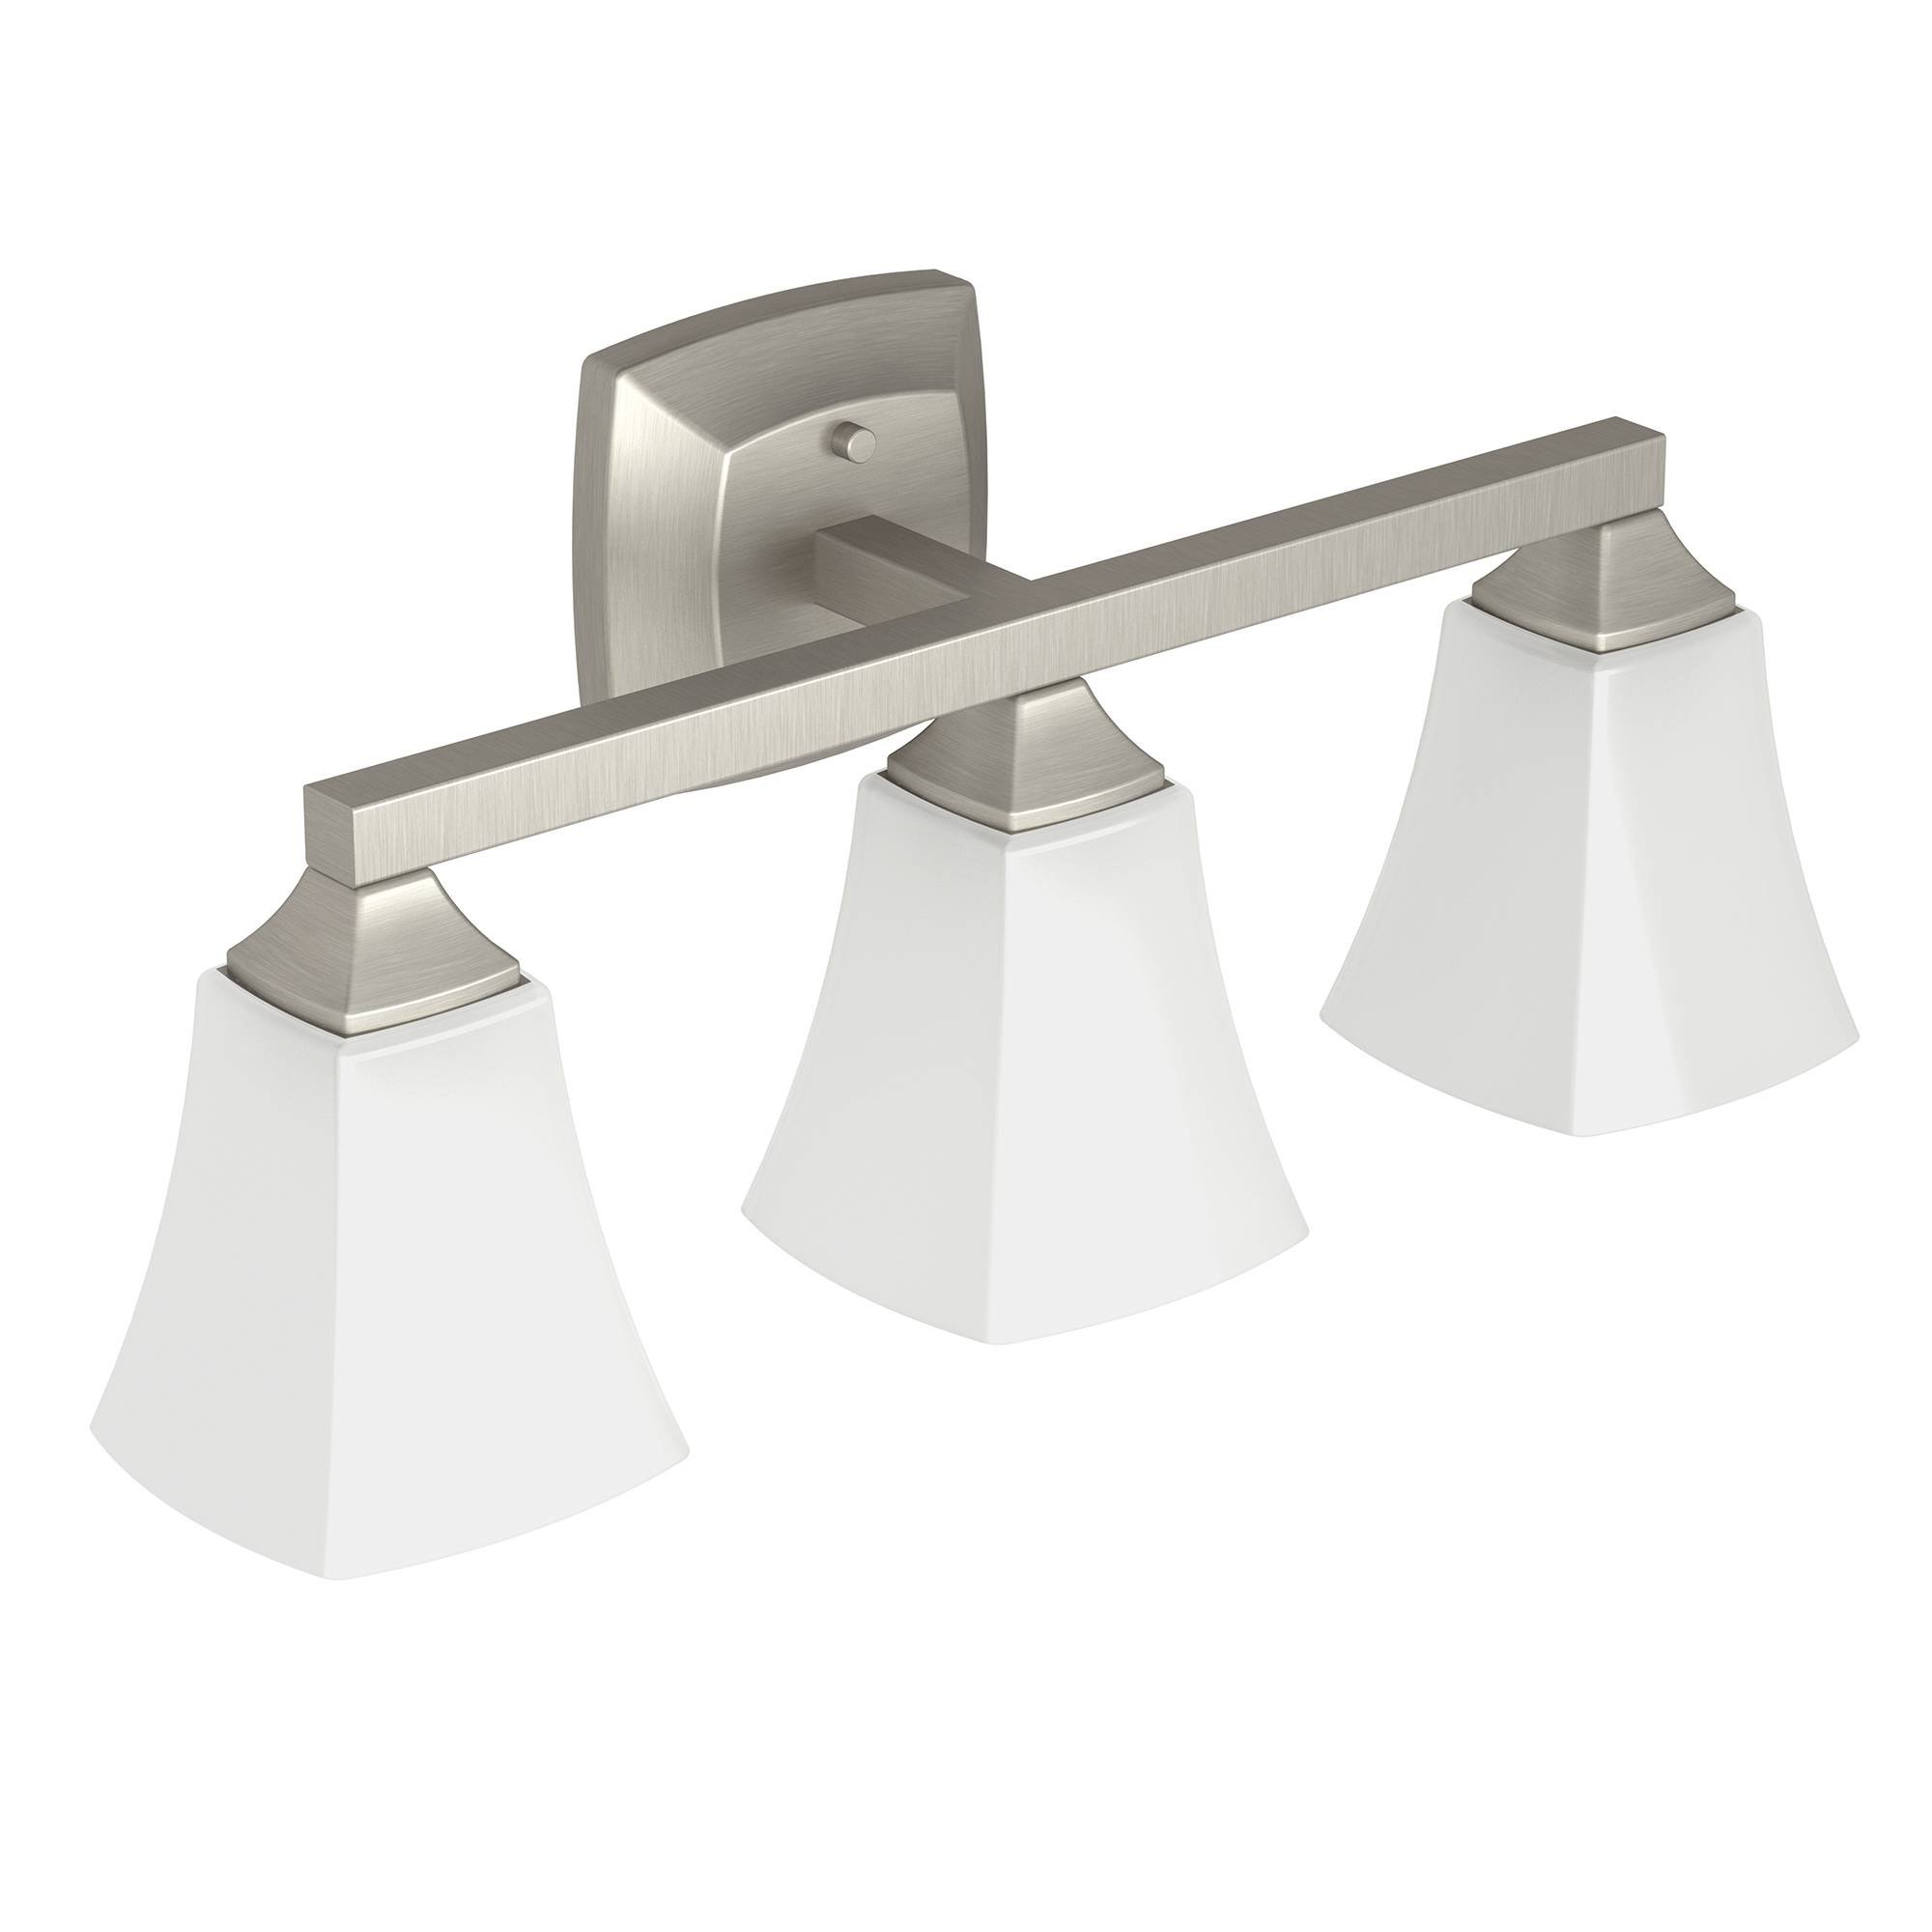 Moen YB5163BN Voss Bath Lighting Three Globe, Brushed Nickel by Moen